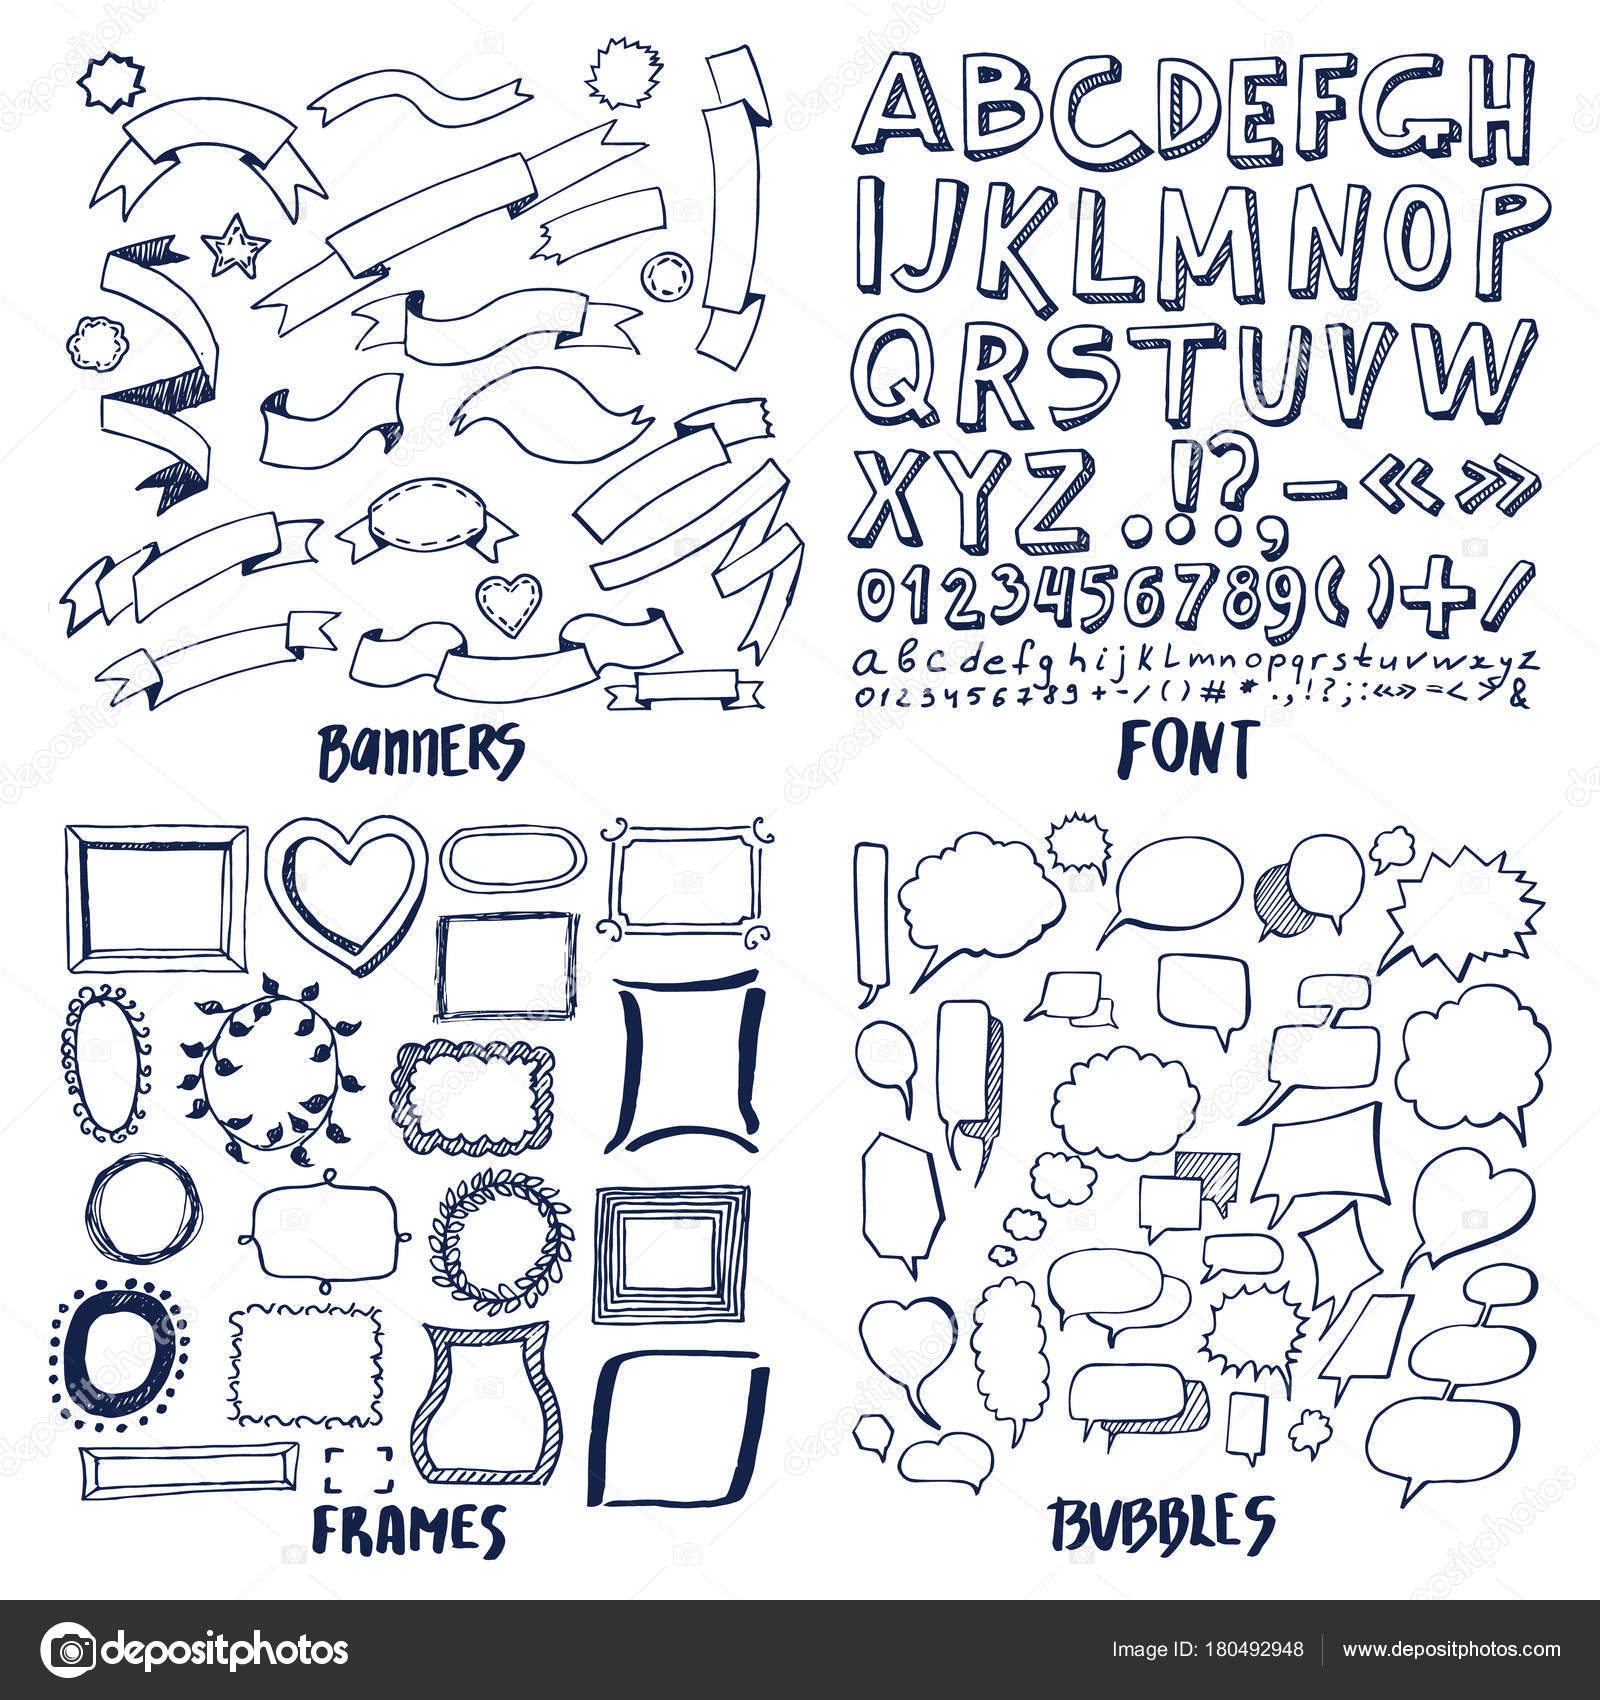 Lot of patterns of font banners frames and bubbles stock vector lot of patterns of font banners frames and bubbles stock vector spiritdancerdesigns Image collections